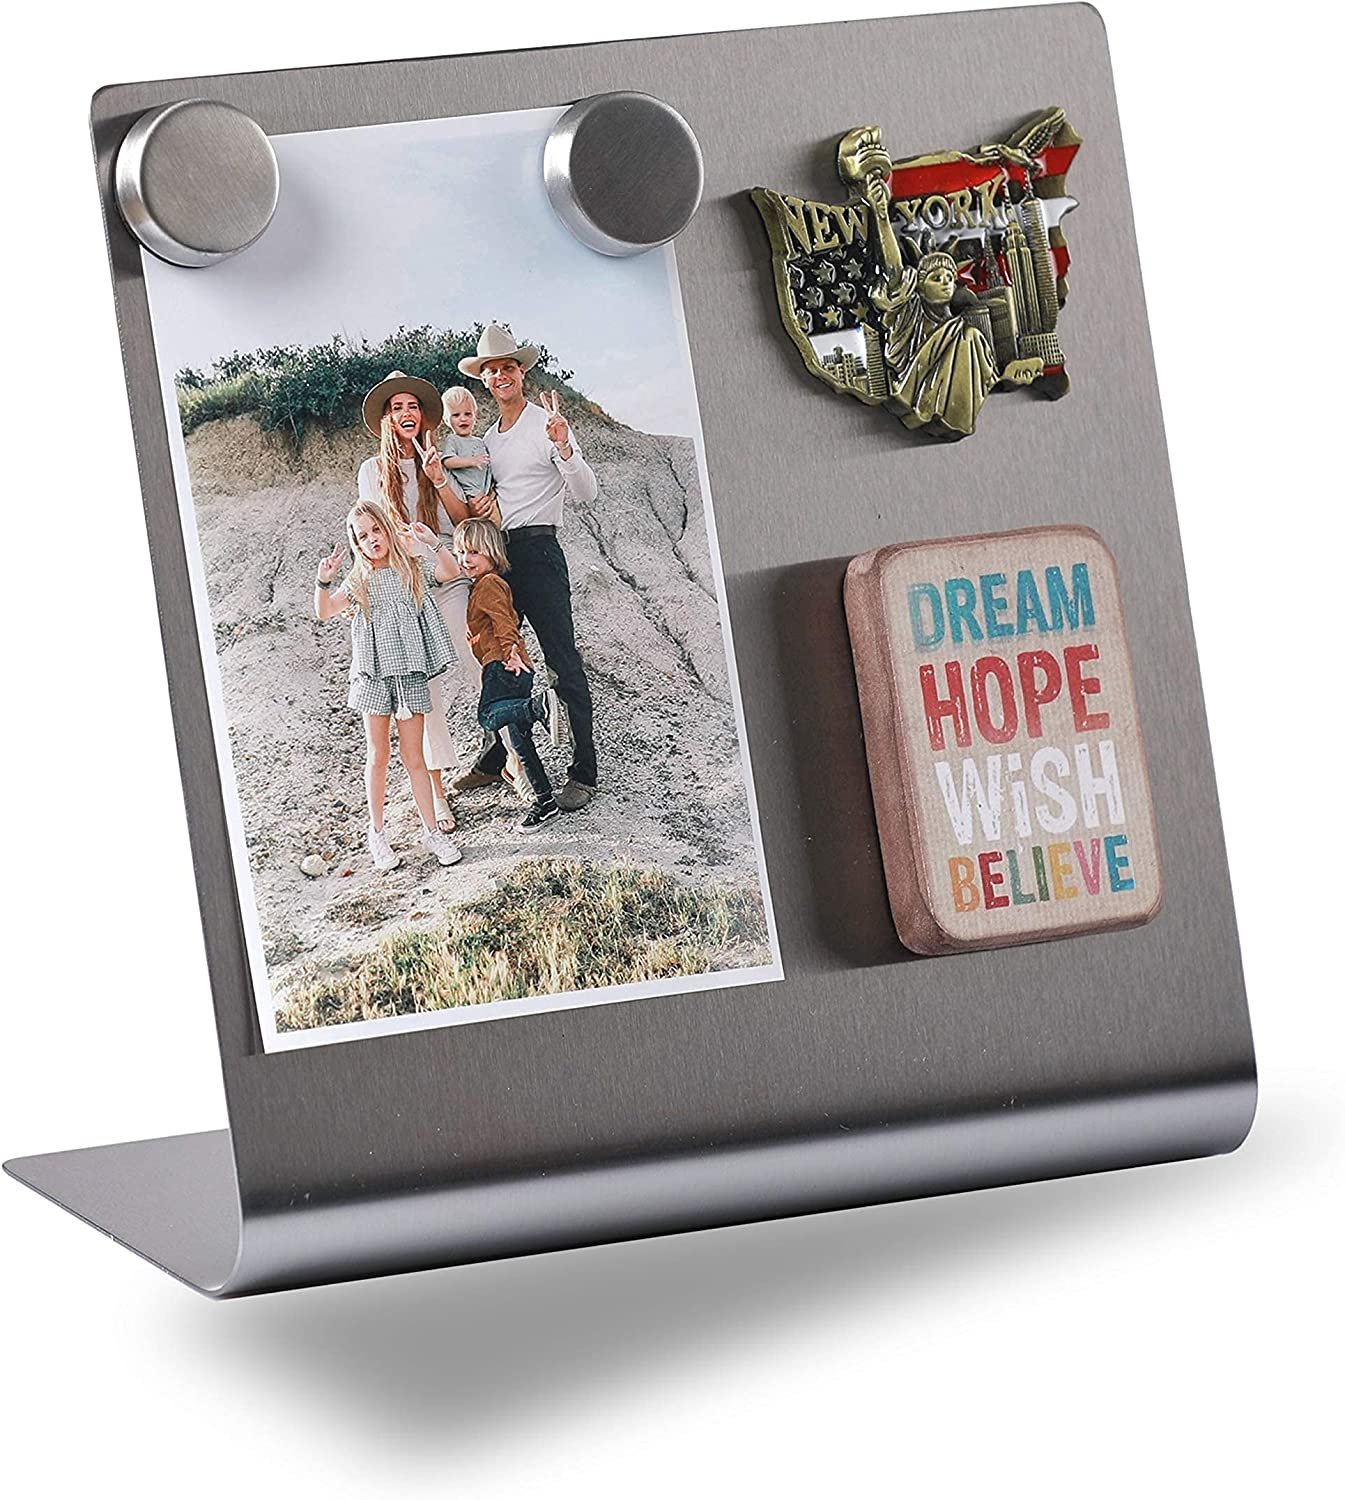 Magnetic Bulletin Board with Stand – Small Dry Erase Memo Board – Tabletop Metal Easel for Magnet Display – Mini Home Decor – 8x8 Inches + 2 Magnets